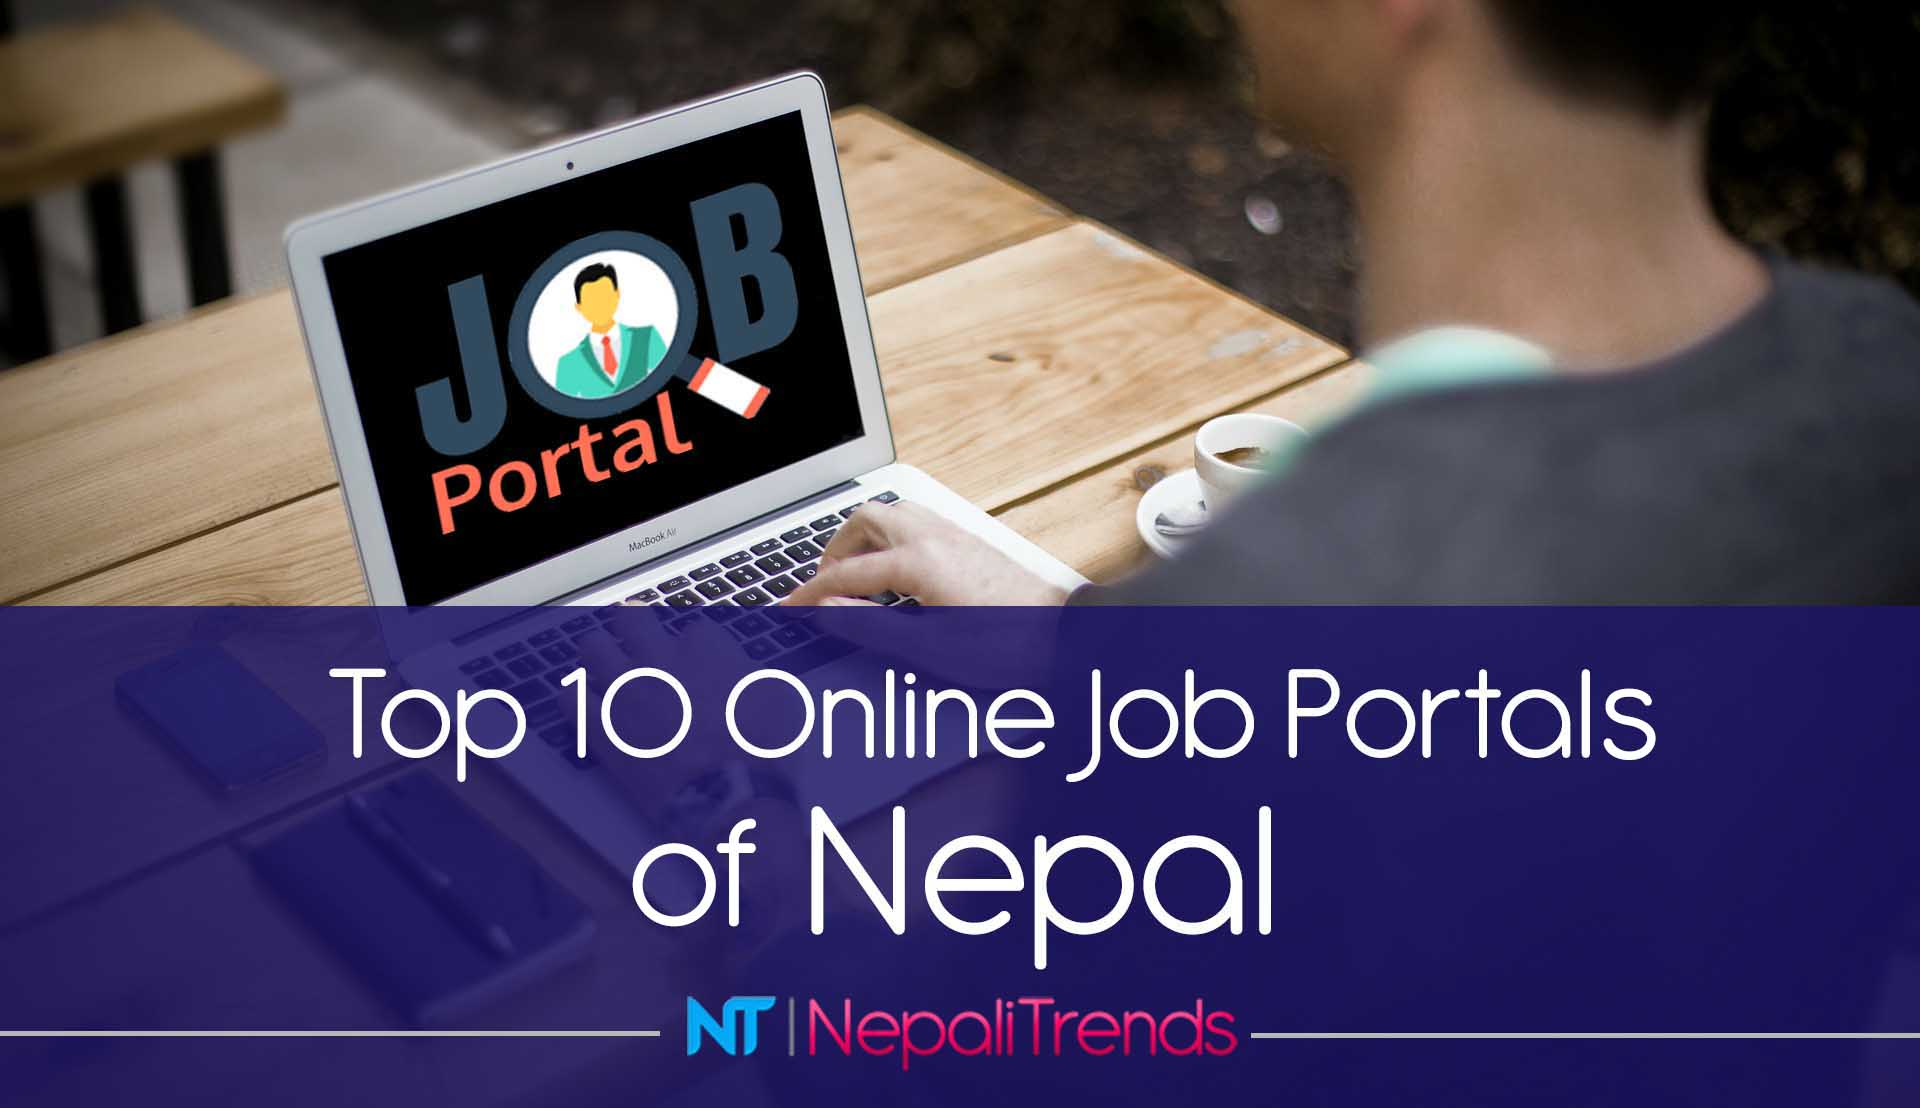 Top 10 Job Portals in Nepal